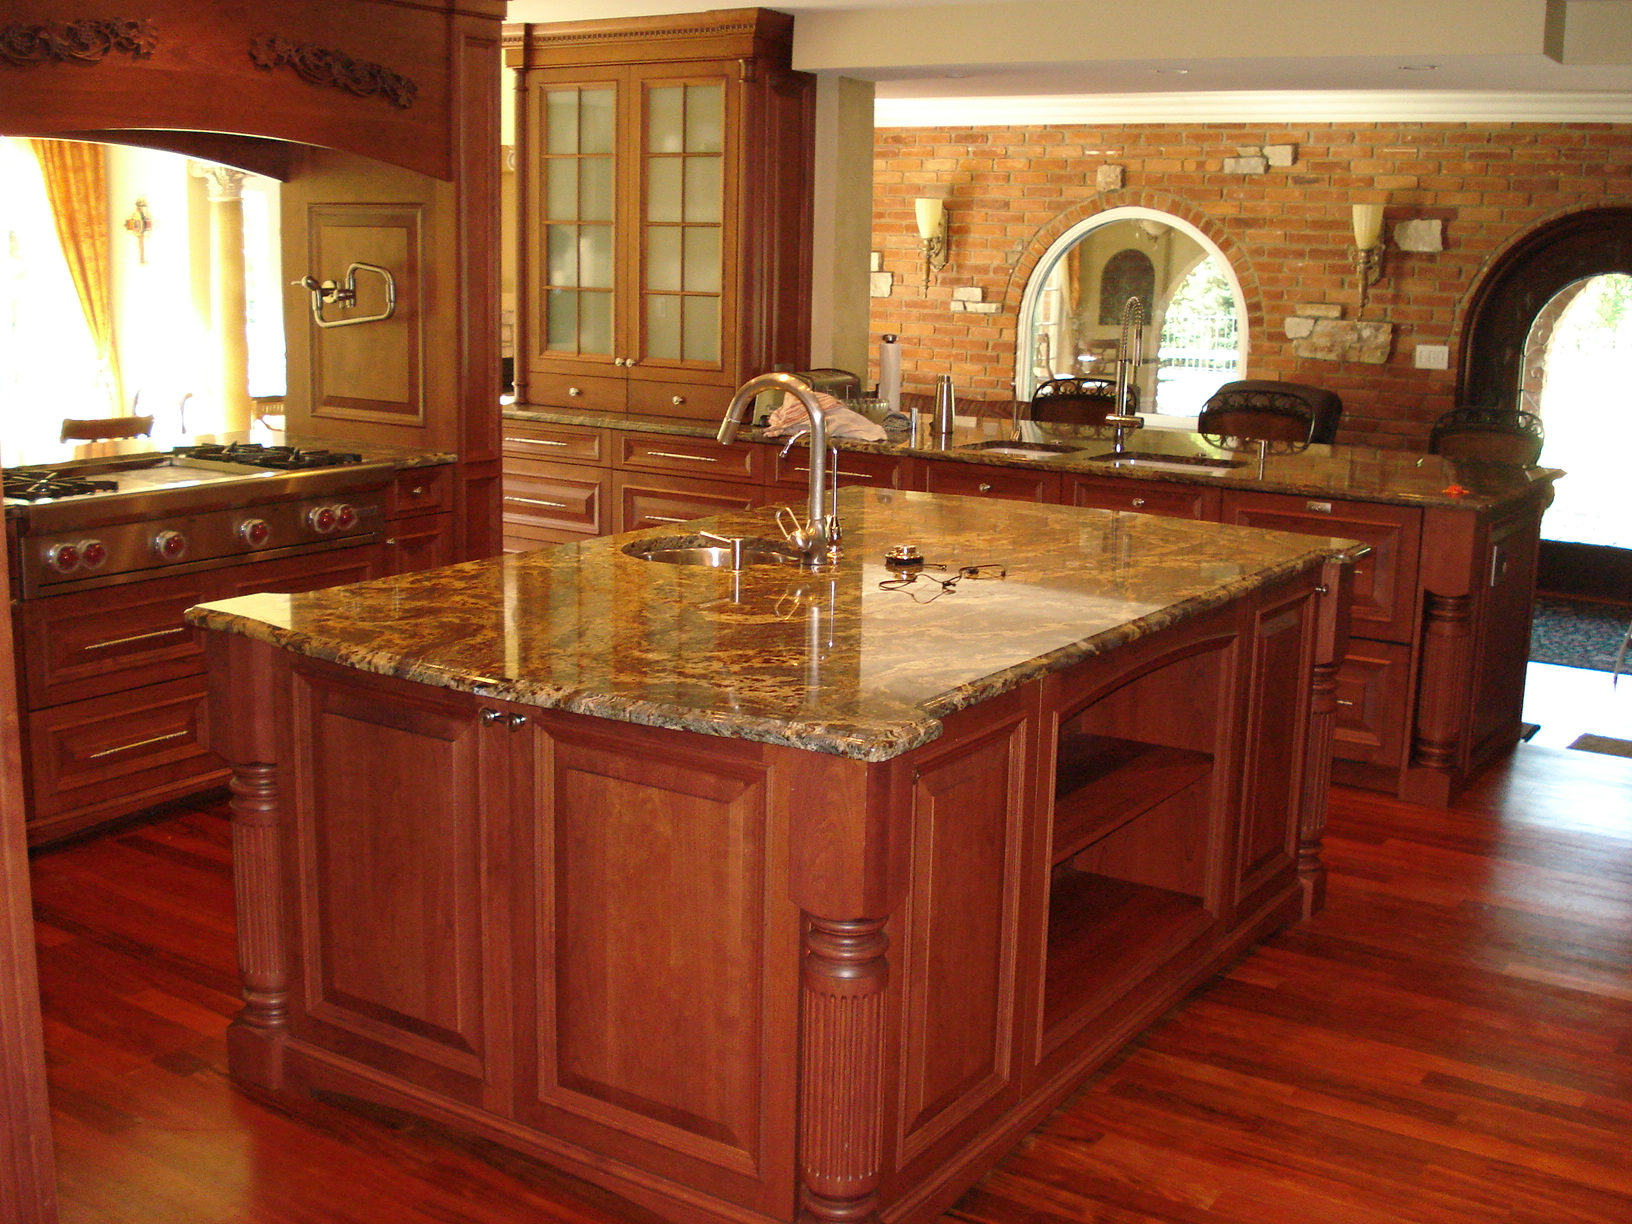 doesn concern for inc granite online naples with vision t fl destination florida and just but new kitchens itself premier kitchen img the countertops